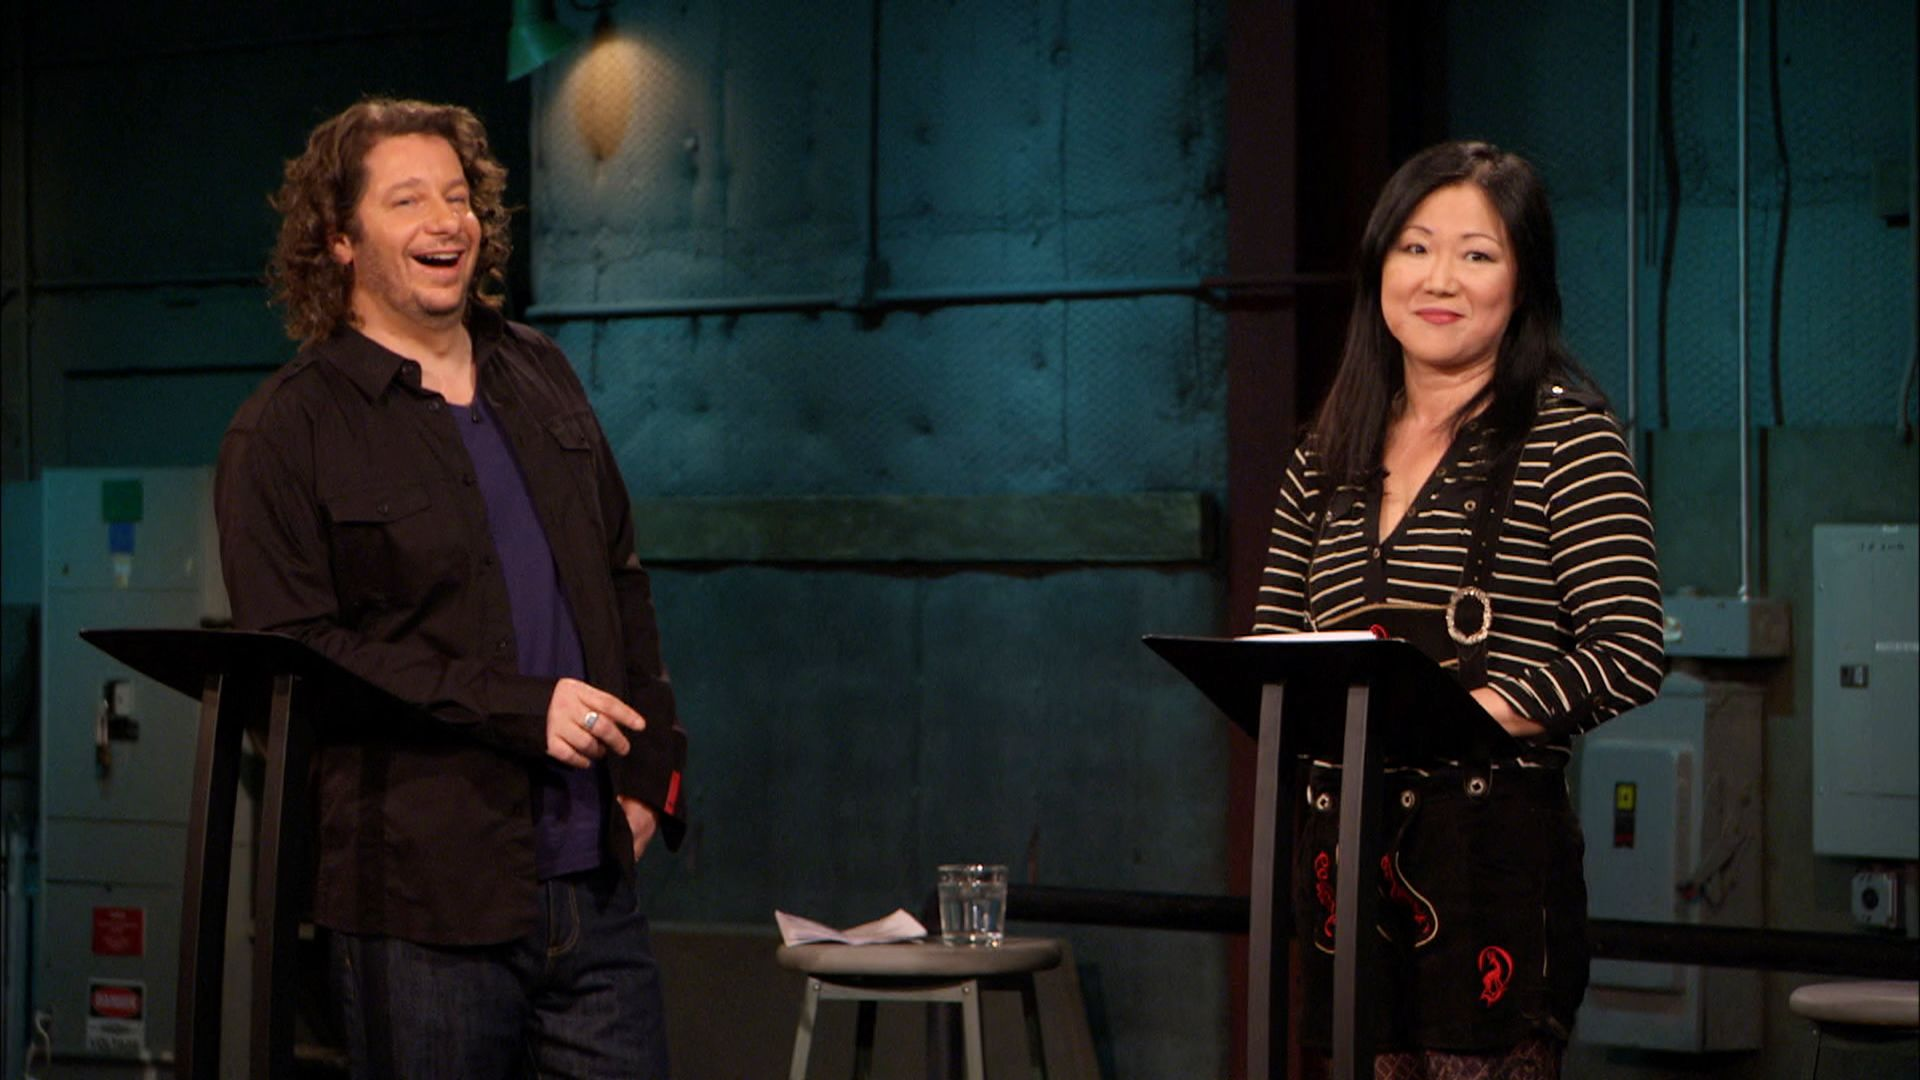 The Burn with Jeff Ross | Comedy Central: The Burn: The Panel Burns Manti Te'o